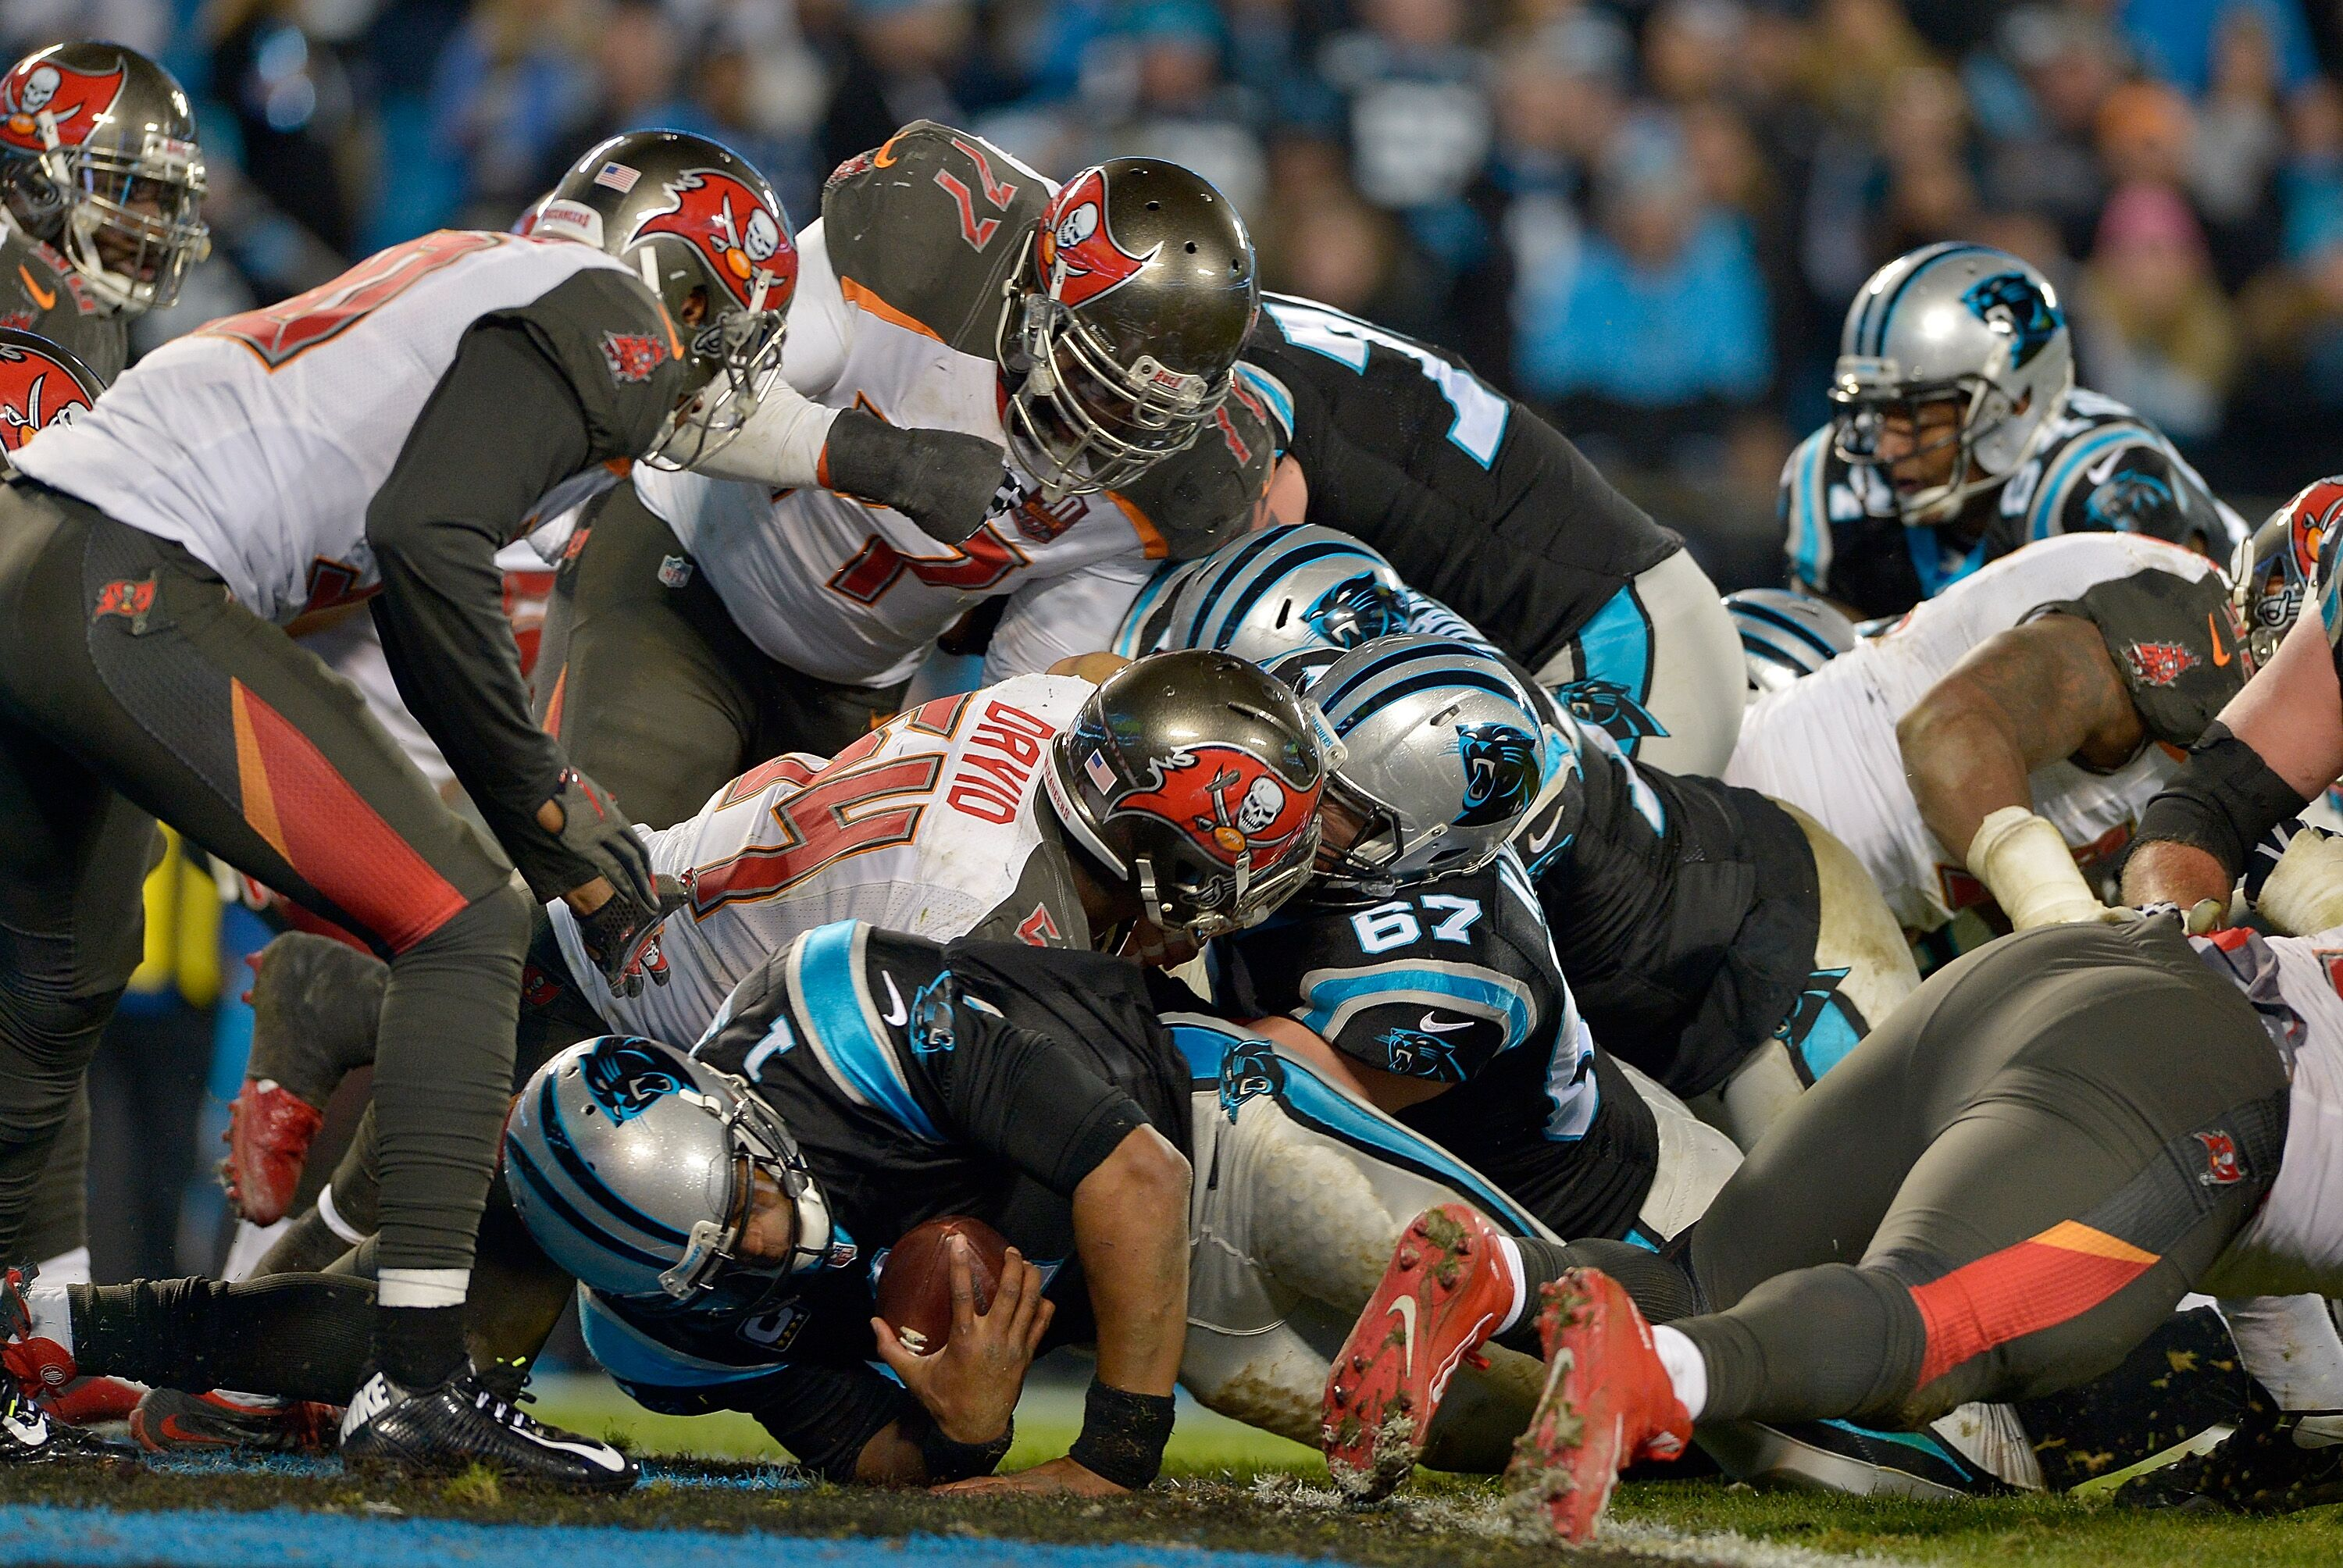 The 2014 Carolina Panthers season was the franchises 20th season in the National Football League and the fourth under head coach Ron Rivera The Panthers captured